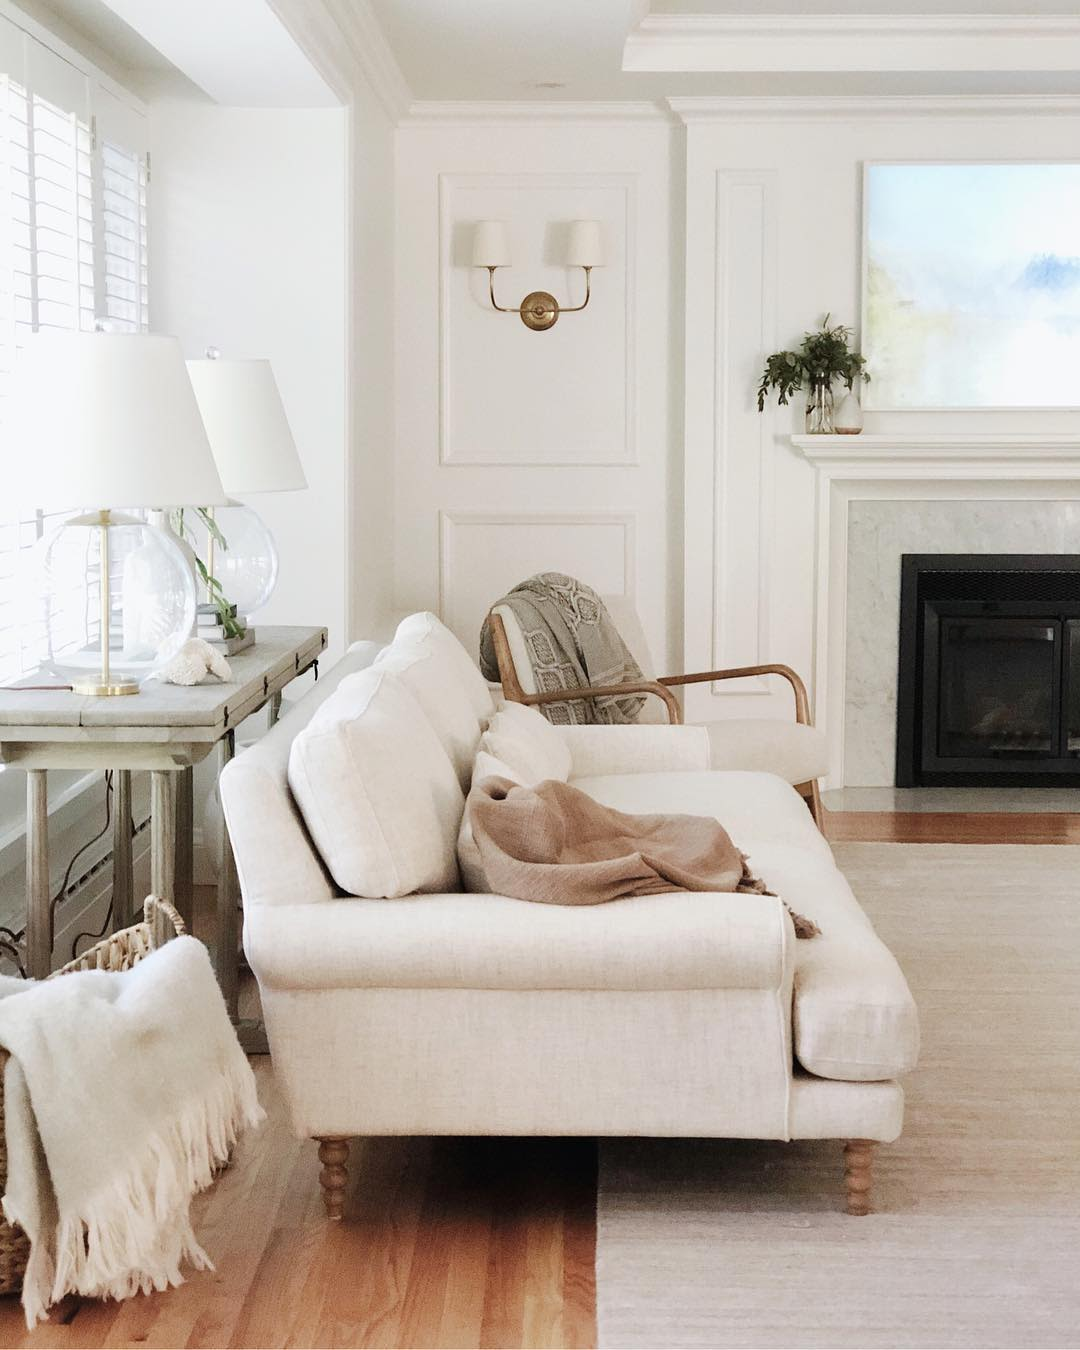 Apartment Definition: 6 Ways To Re-think Your Living Room Seating Plan…No Matter